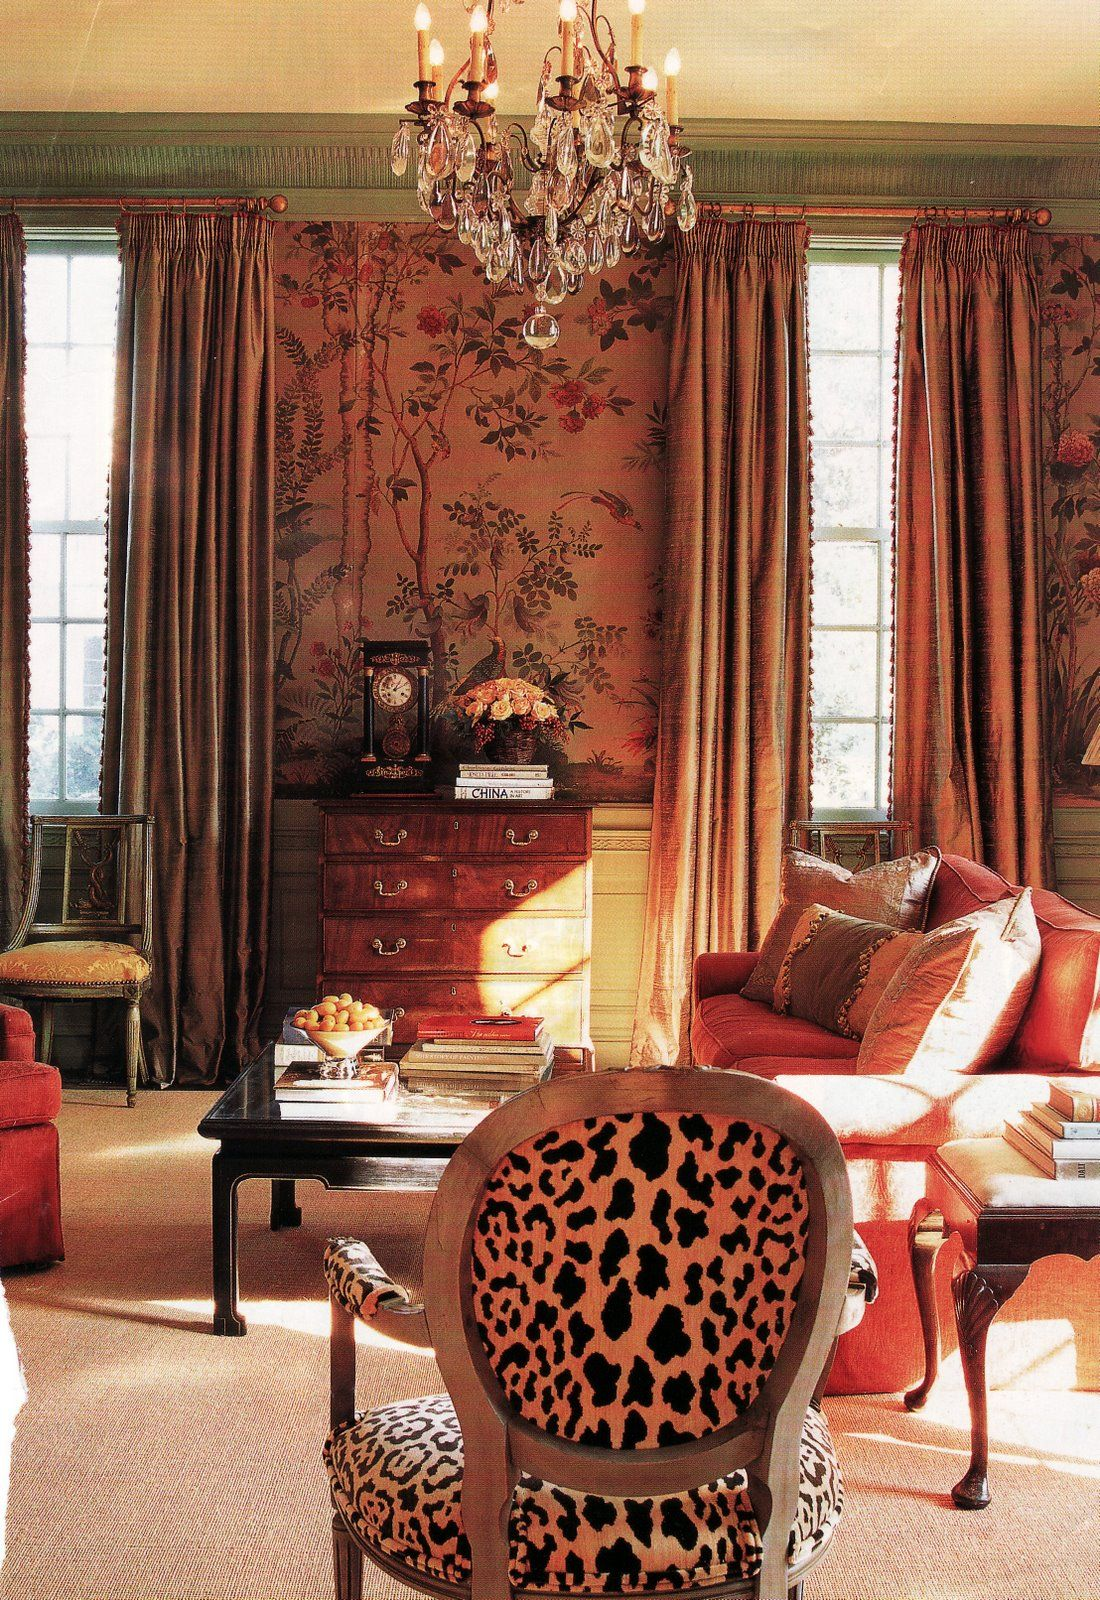 Suzy Q Better Decorating Blog Antique Chair Louis Xvi Animal Print Leopard Reupholster Gold Gilded Statement Lounge Chez Traditional